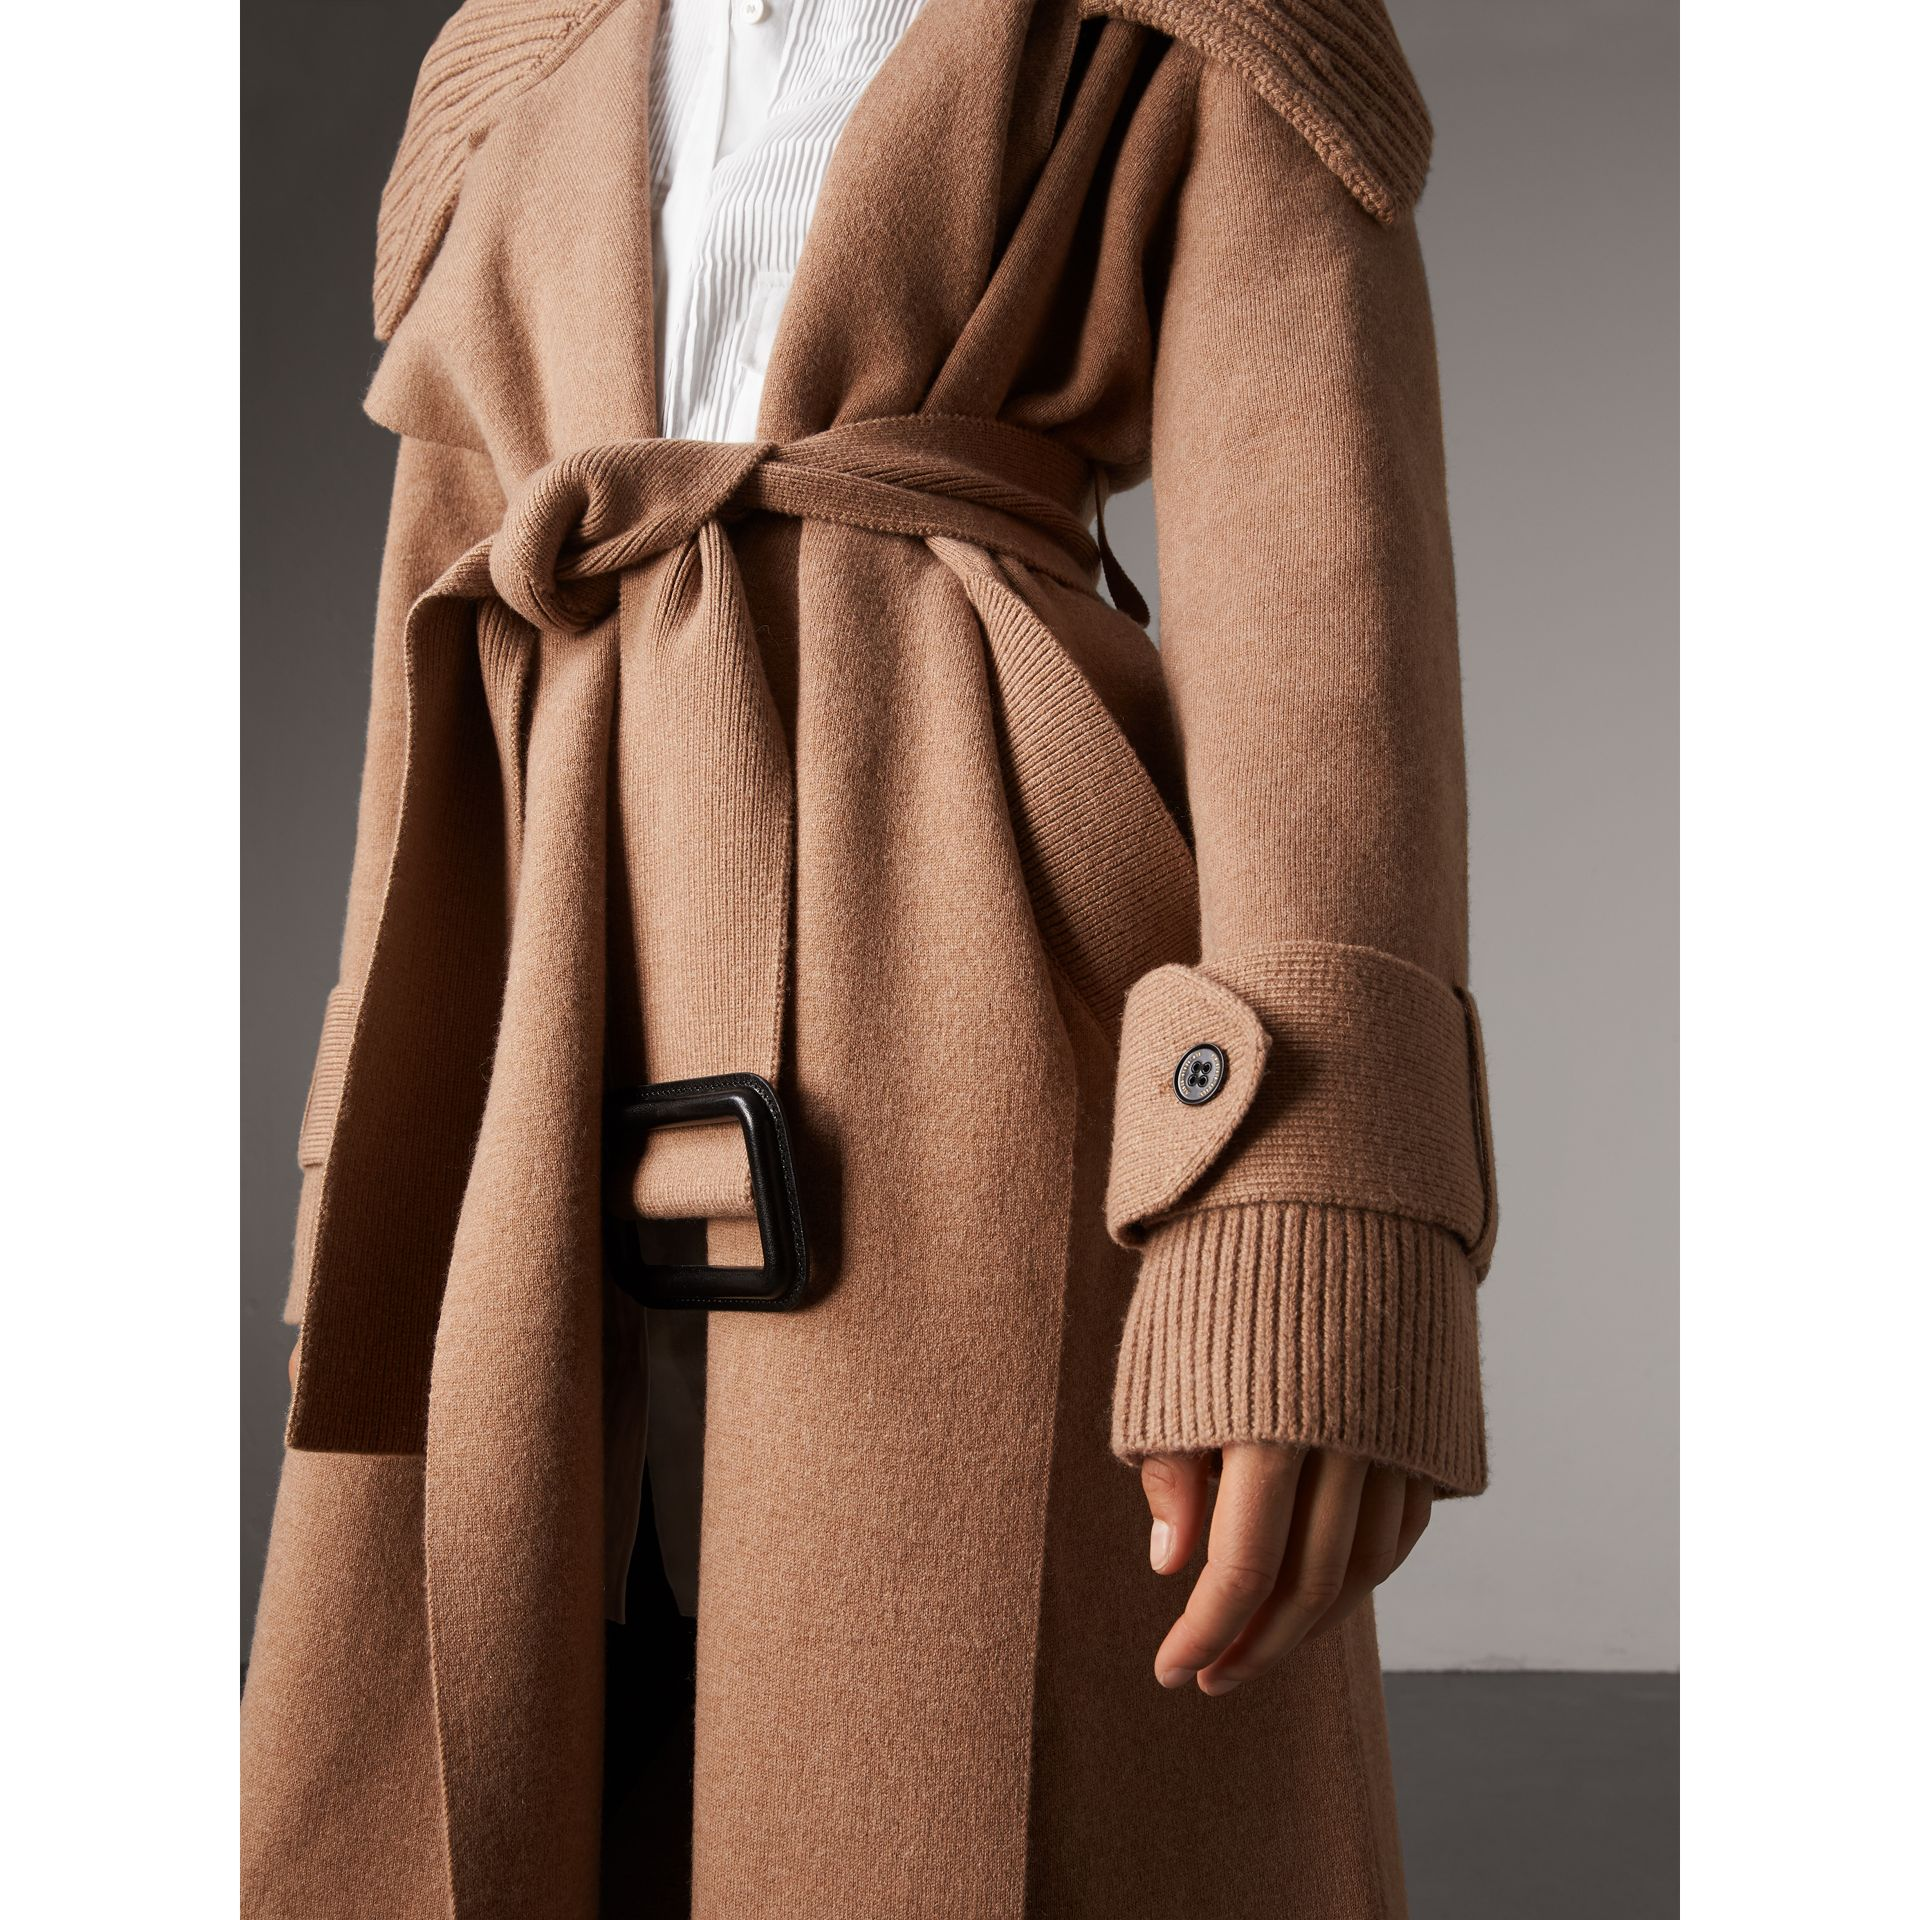 Knitted Wool Cashmere Wrap Coat in Camel - Women | Burberry - gallery image 2